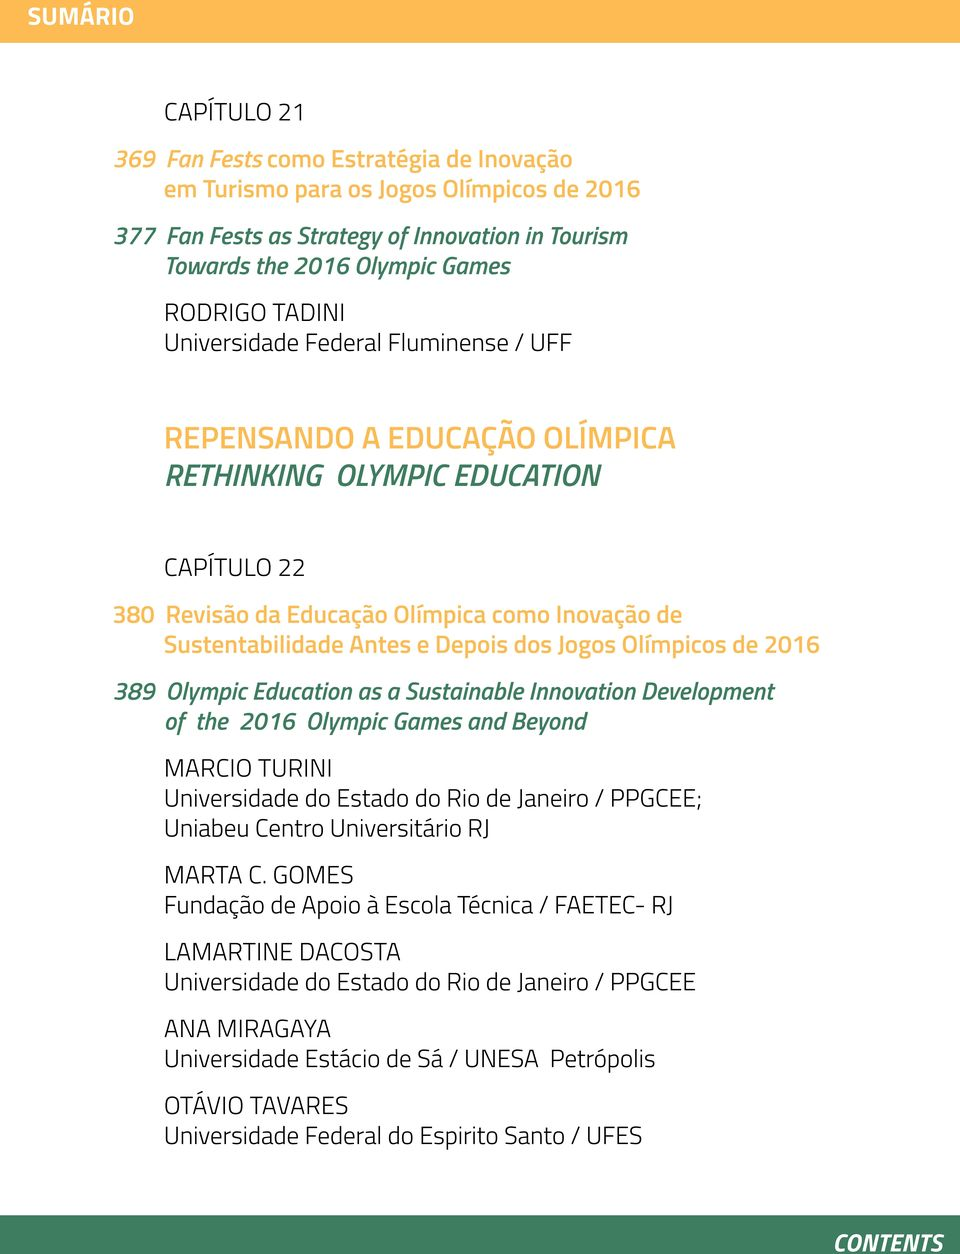 dos Jogos Olímpicos de 2016 389 Olympic Education as a Sustainable Innovation Development of the 2016 Olympic Games and Beyond MARCIO TURINI Universidade do Estado do Rio de Janeiro / PPGCEE; Uniabeu